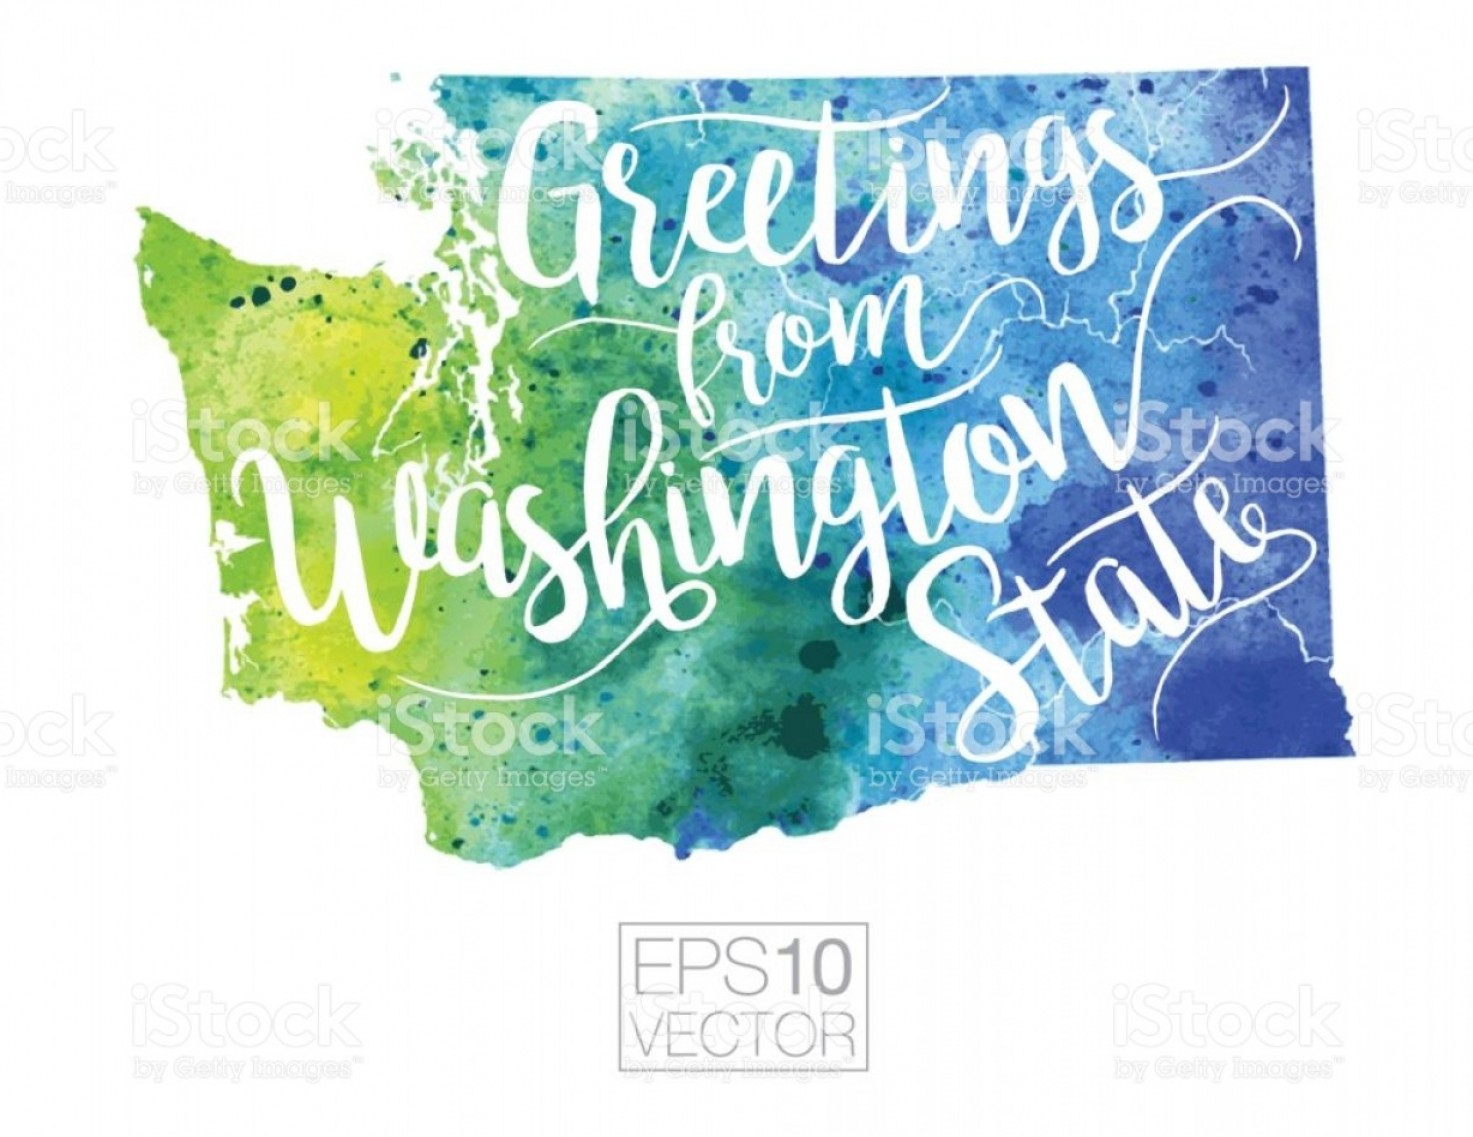 Washington State Map Vector: Greetings From Washington State Vector Watercolor Map Gm